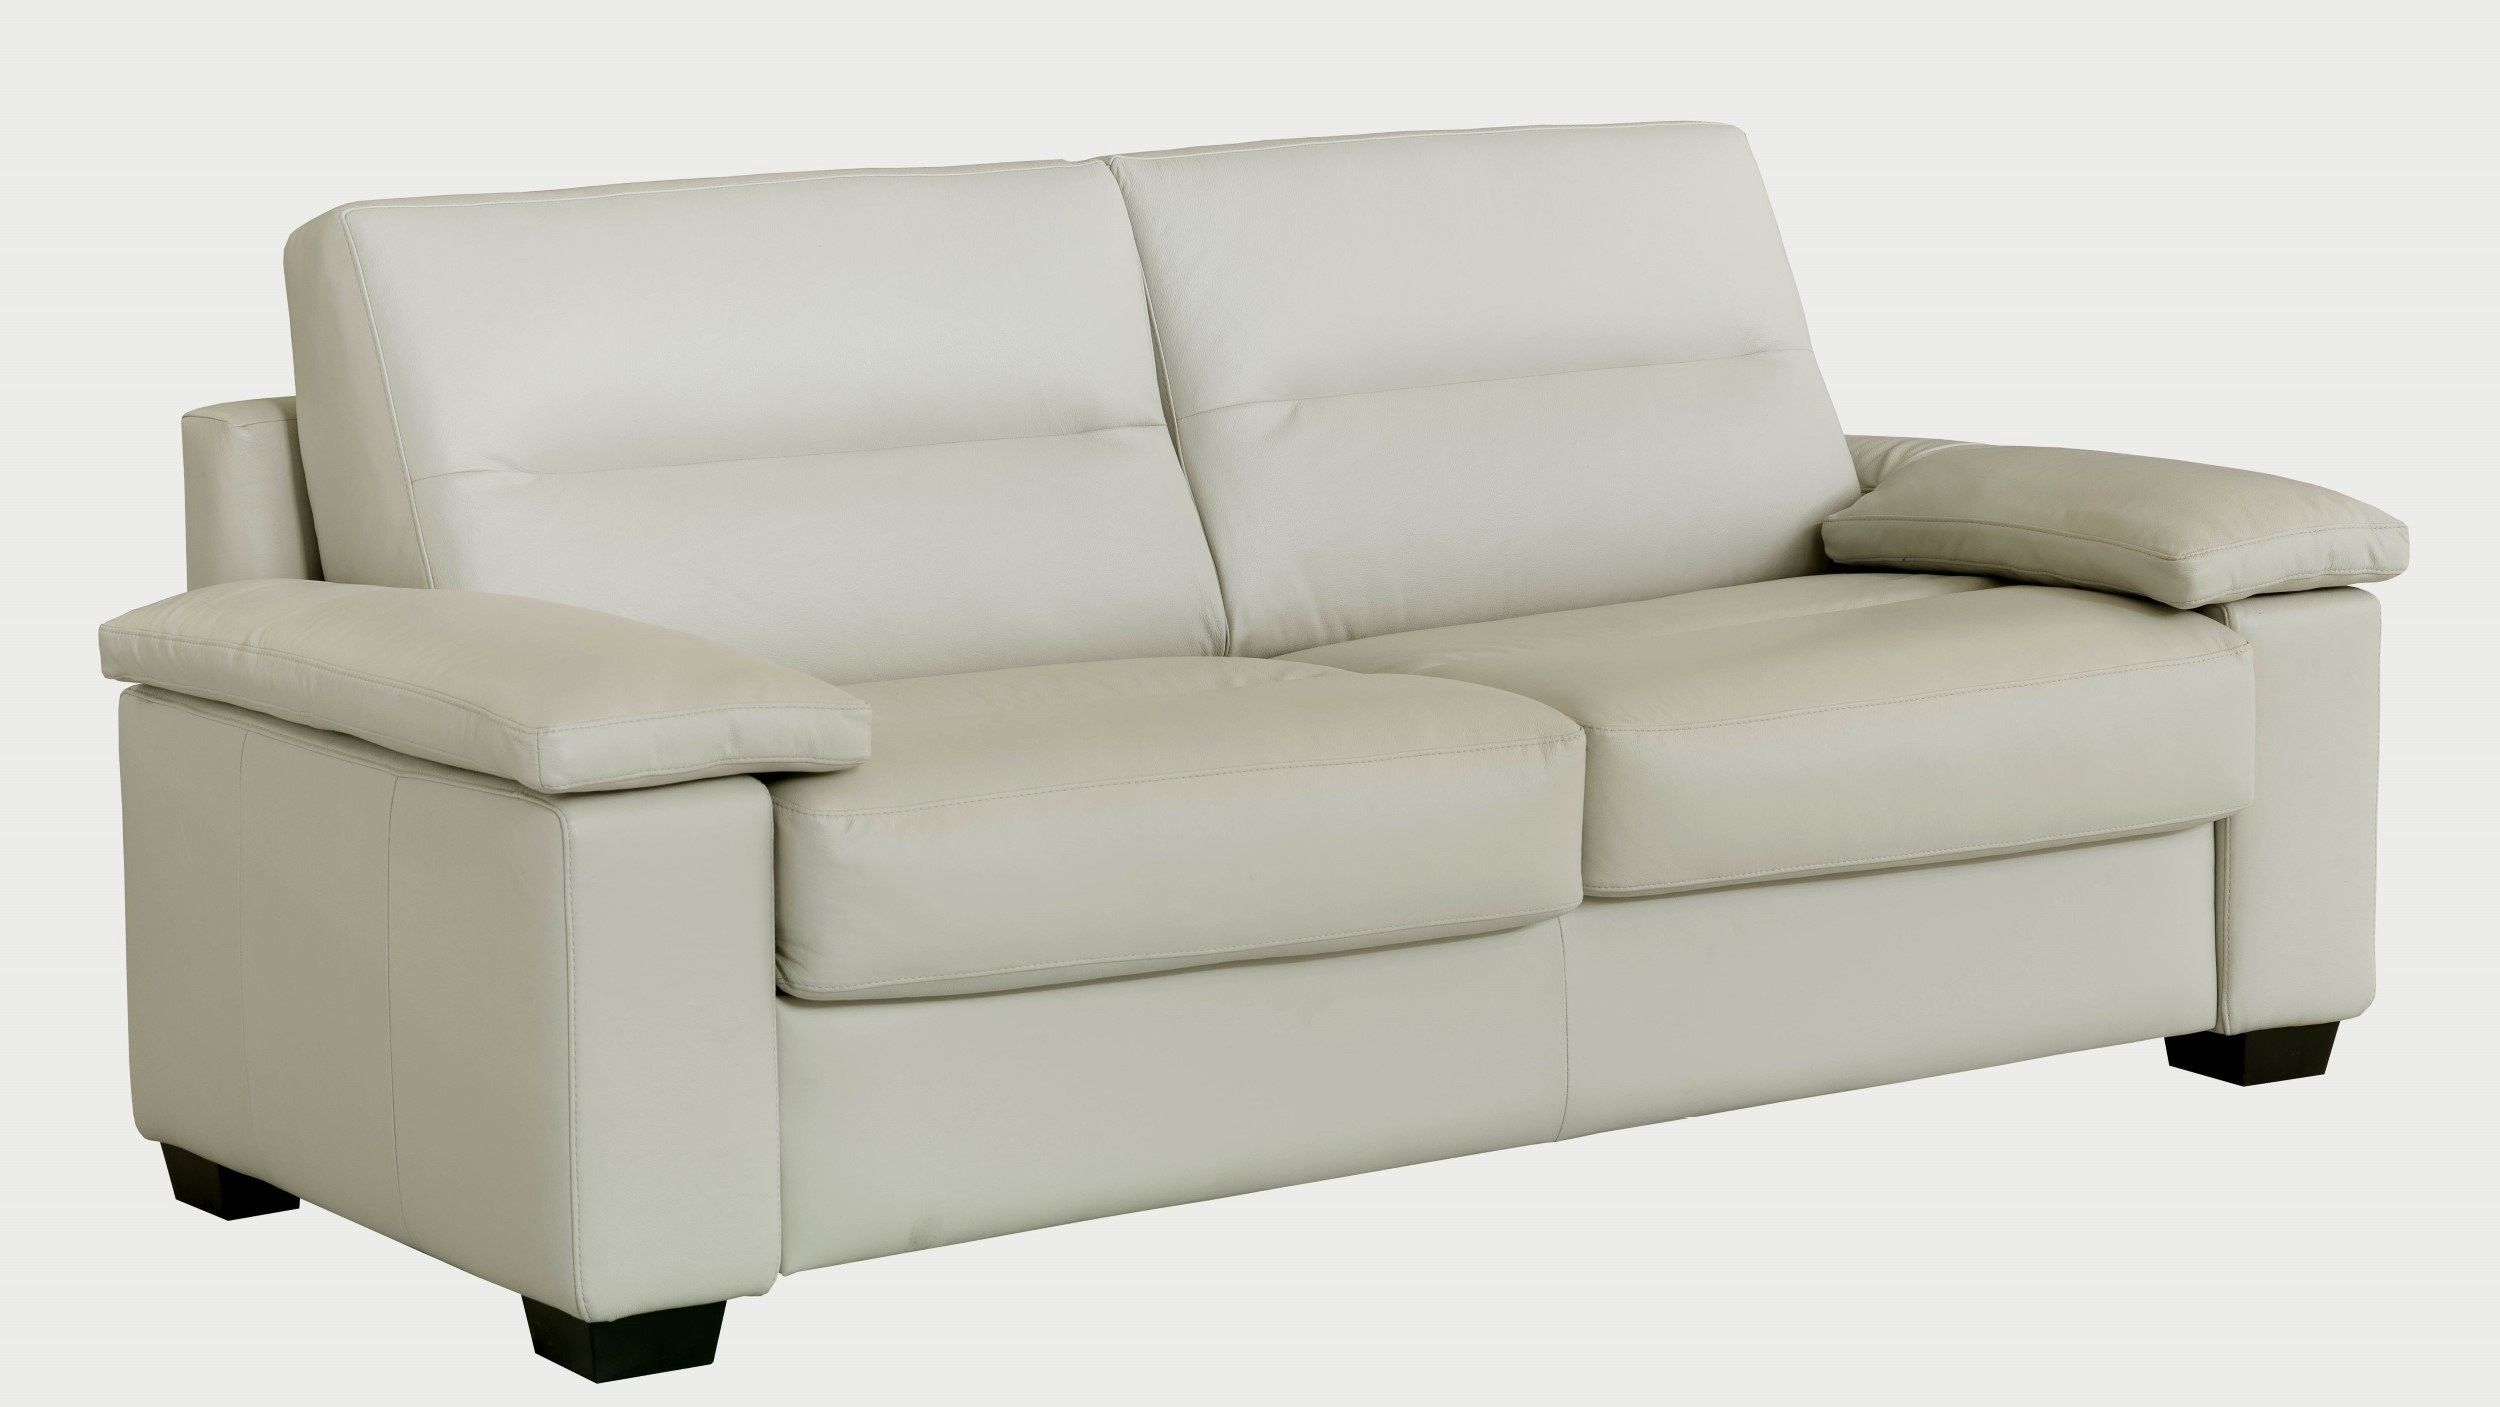 Off White Leather Sofa Bed In 2020 Leather Sofa Bed White Leather Sofa Bed White Leather Sofas